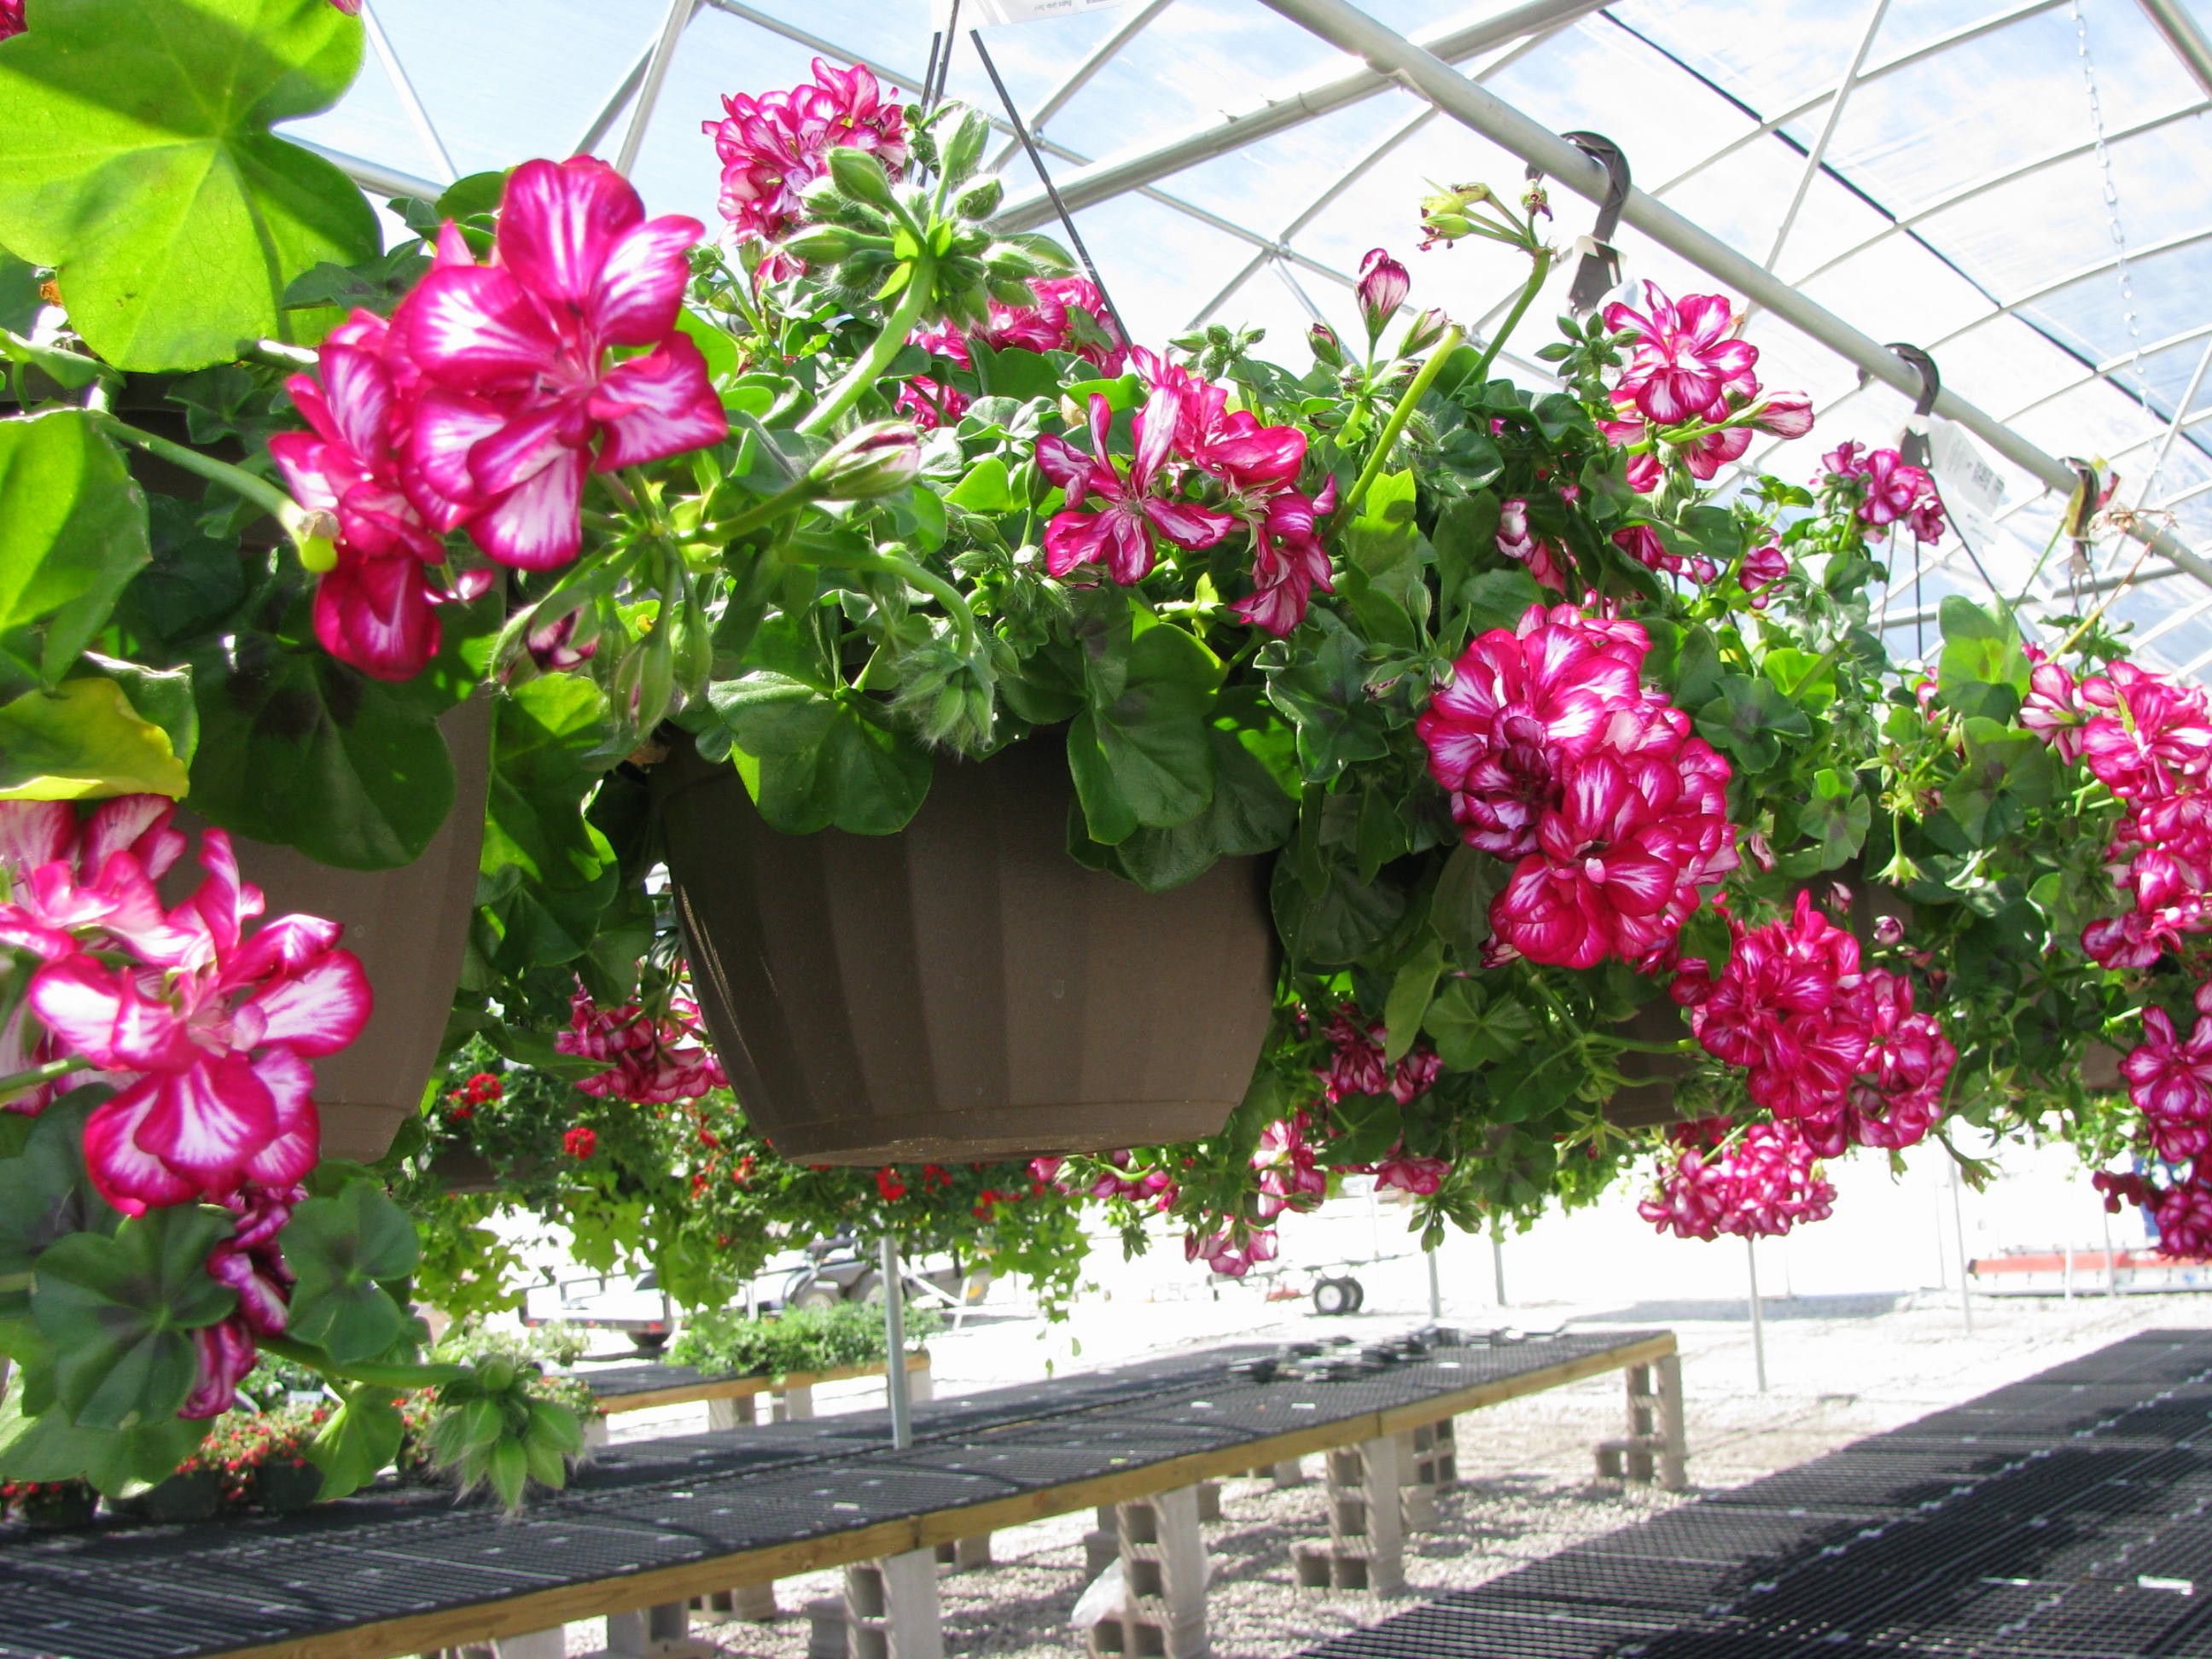 Growing Hanging Flower Baskets : Most beautiful flowers to grow in hanging basket